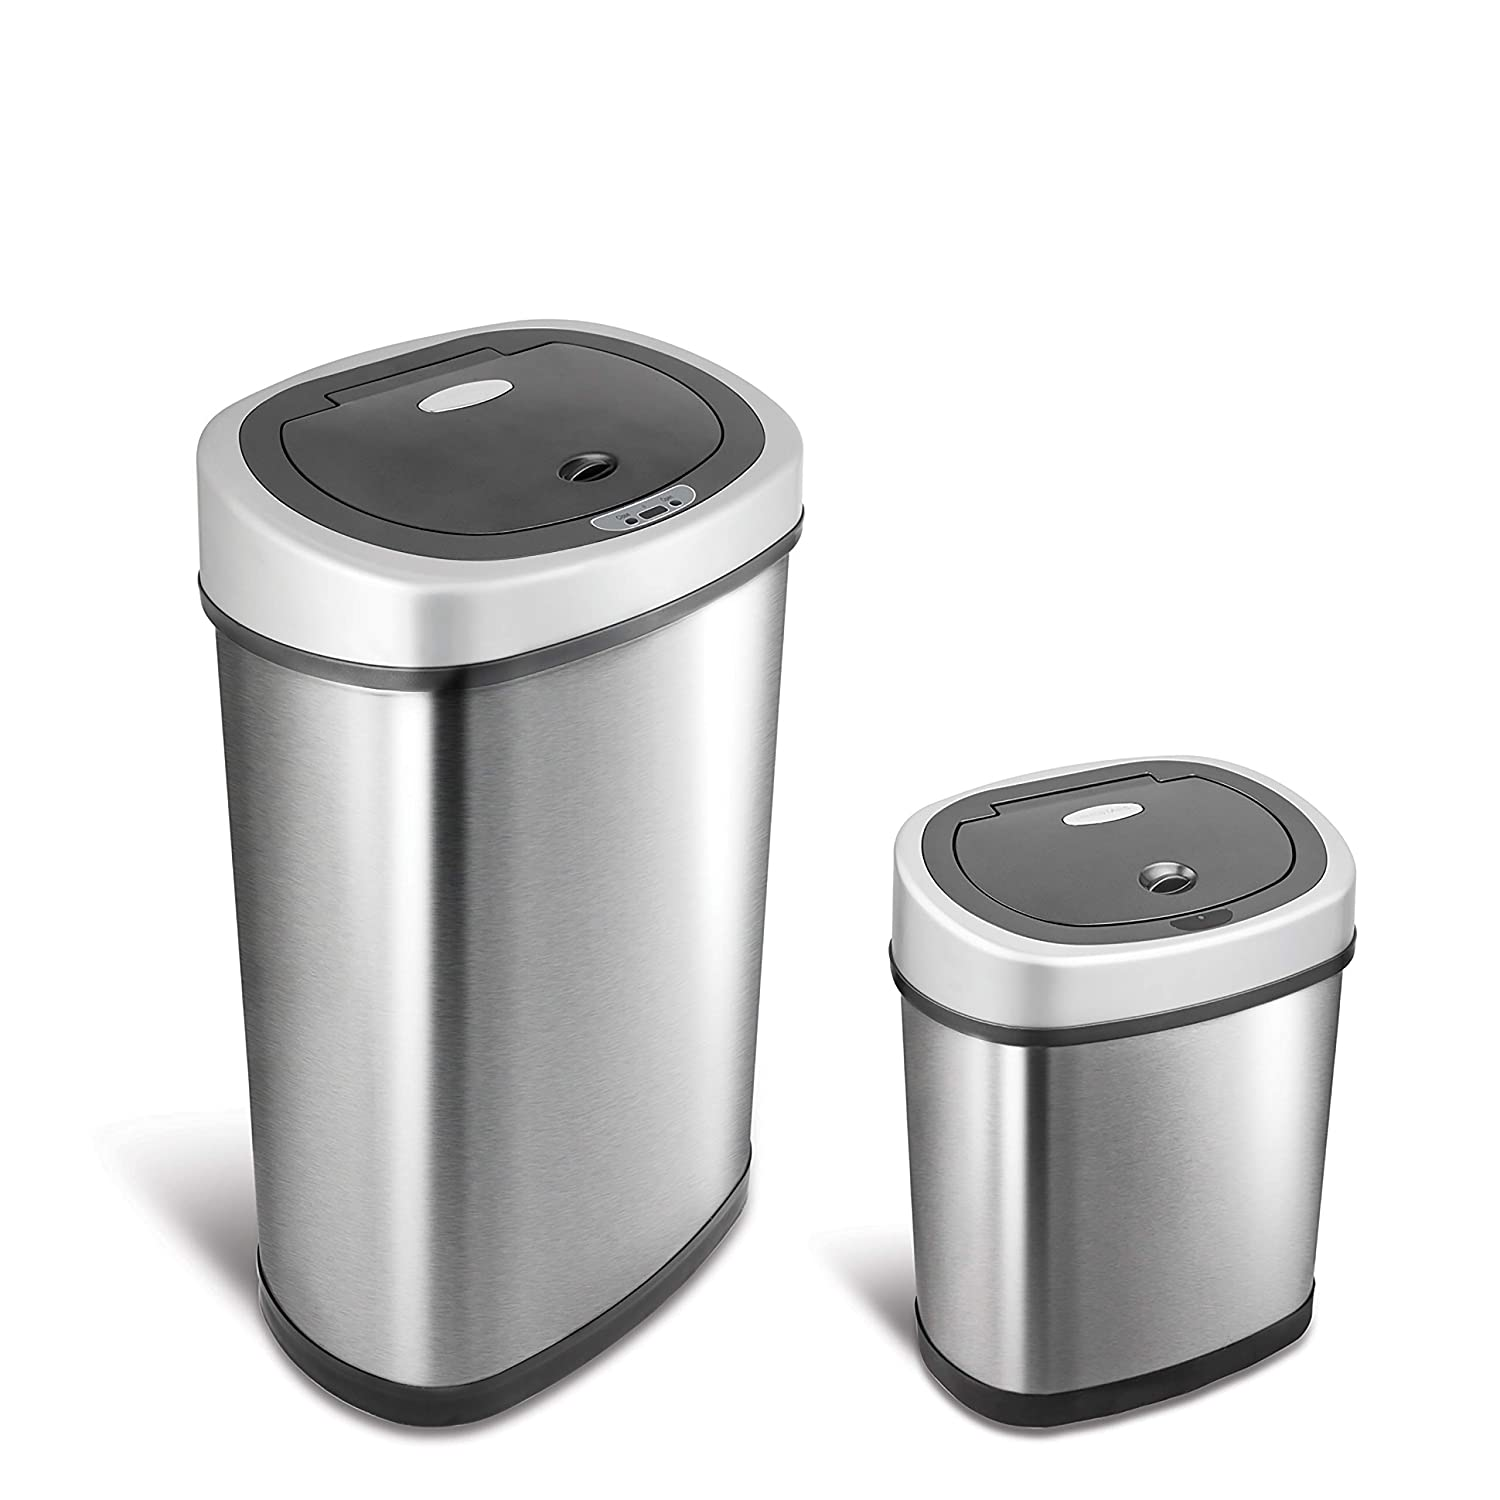 NINESTARS CB-DZT-40-8/12-18 Automatic Touchless Infrared Motion Sensor Trash Can Combo Set, 11 Gal 40L & 3 Gal 12L, Stainless Steel Base (Round, Black & Ladybug Lid) Fuzhou NaShiDa Electronic Co.